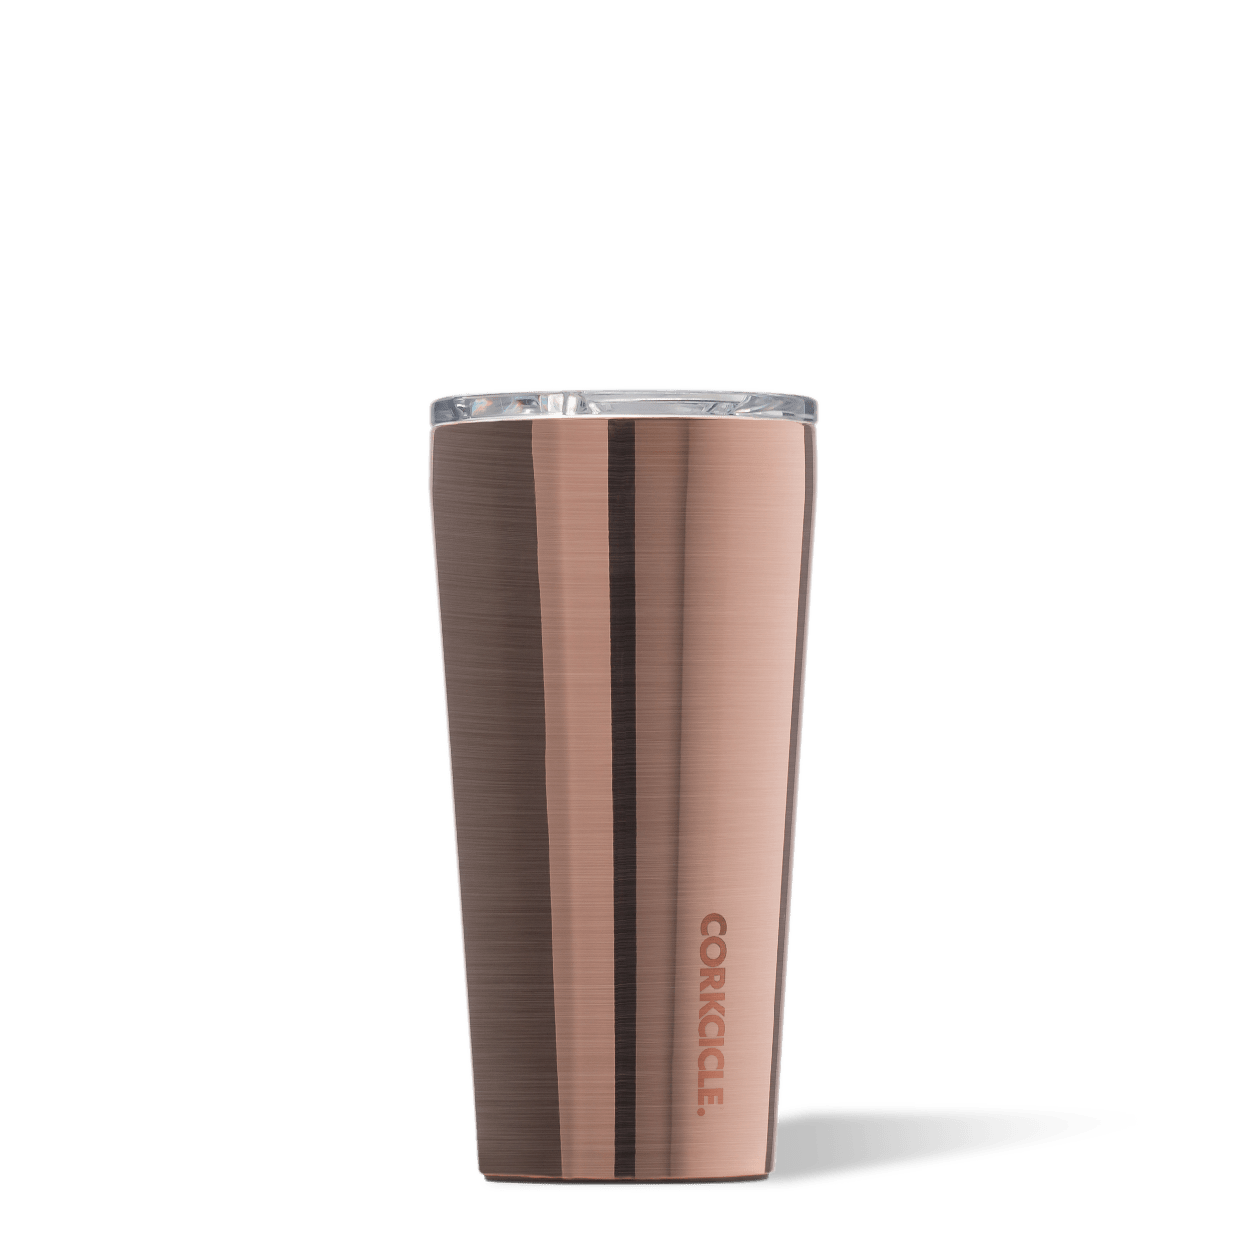 Corkcicle 16oz Brushed Steel Metallic Tumbler Side View.